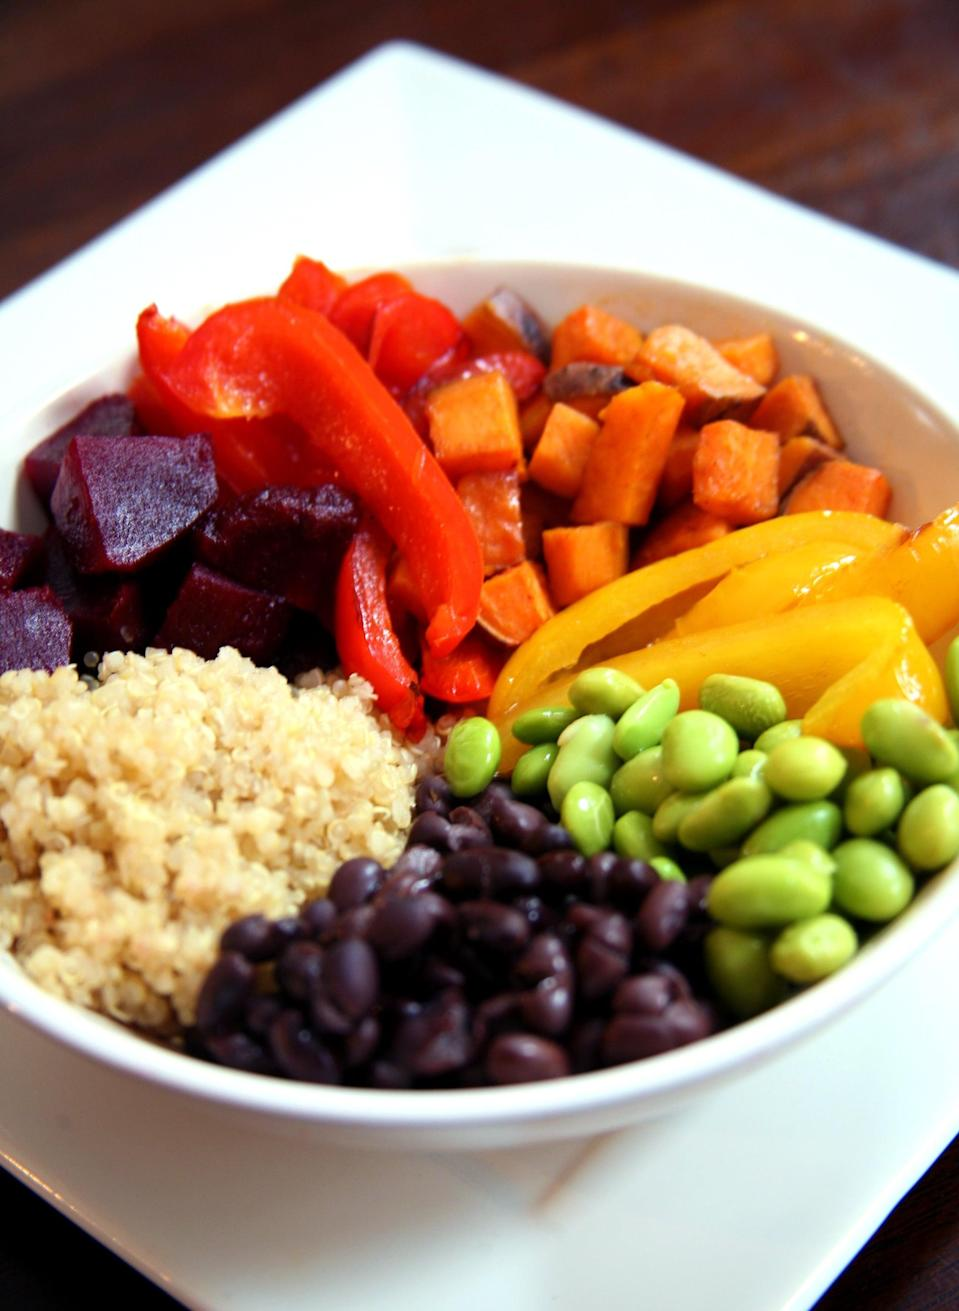 "<p>Aim to eat at least three <a href=""https://www.popsugar.com/fitness/Rainbow-Meal-Guide-36724547"" class=""link rapid-noclick-resp"" rel=""nofollow noopener"" target=""_blank"" data-ylk=""slk:brightly-colored foods at every meal"">brightly-colored foods at every meal</a>. Their vibrant hue means they're high in vitamins and antioxidants. </p>"